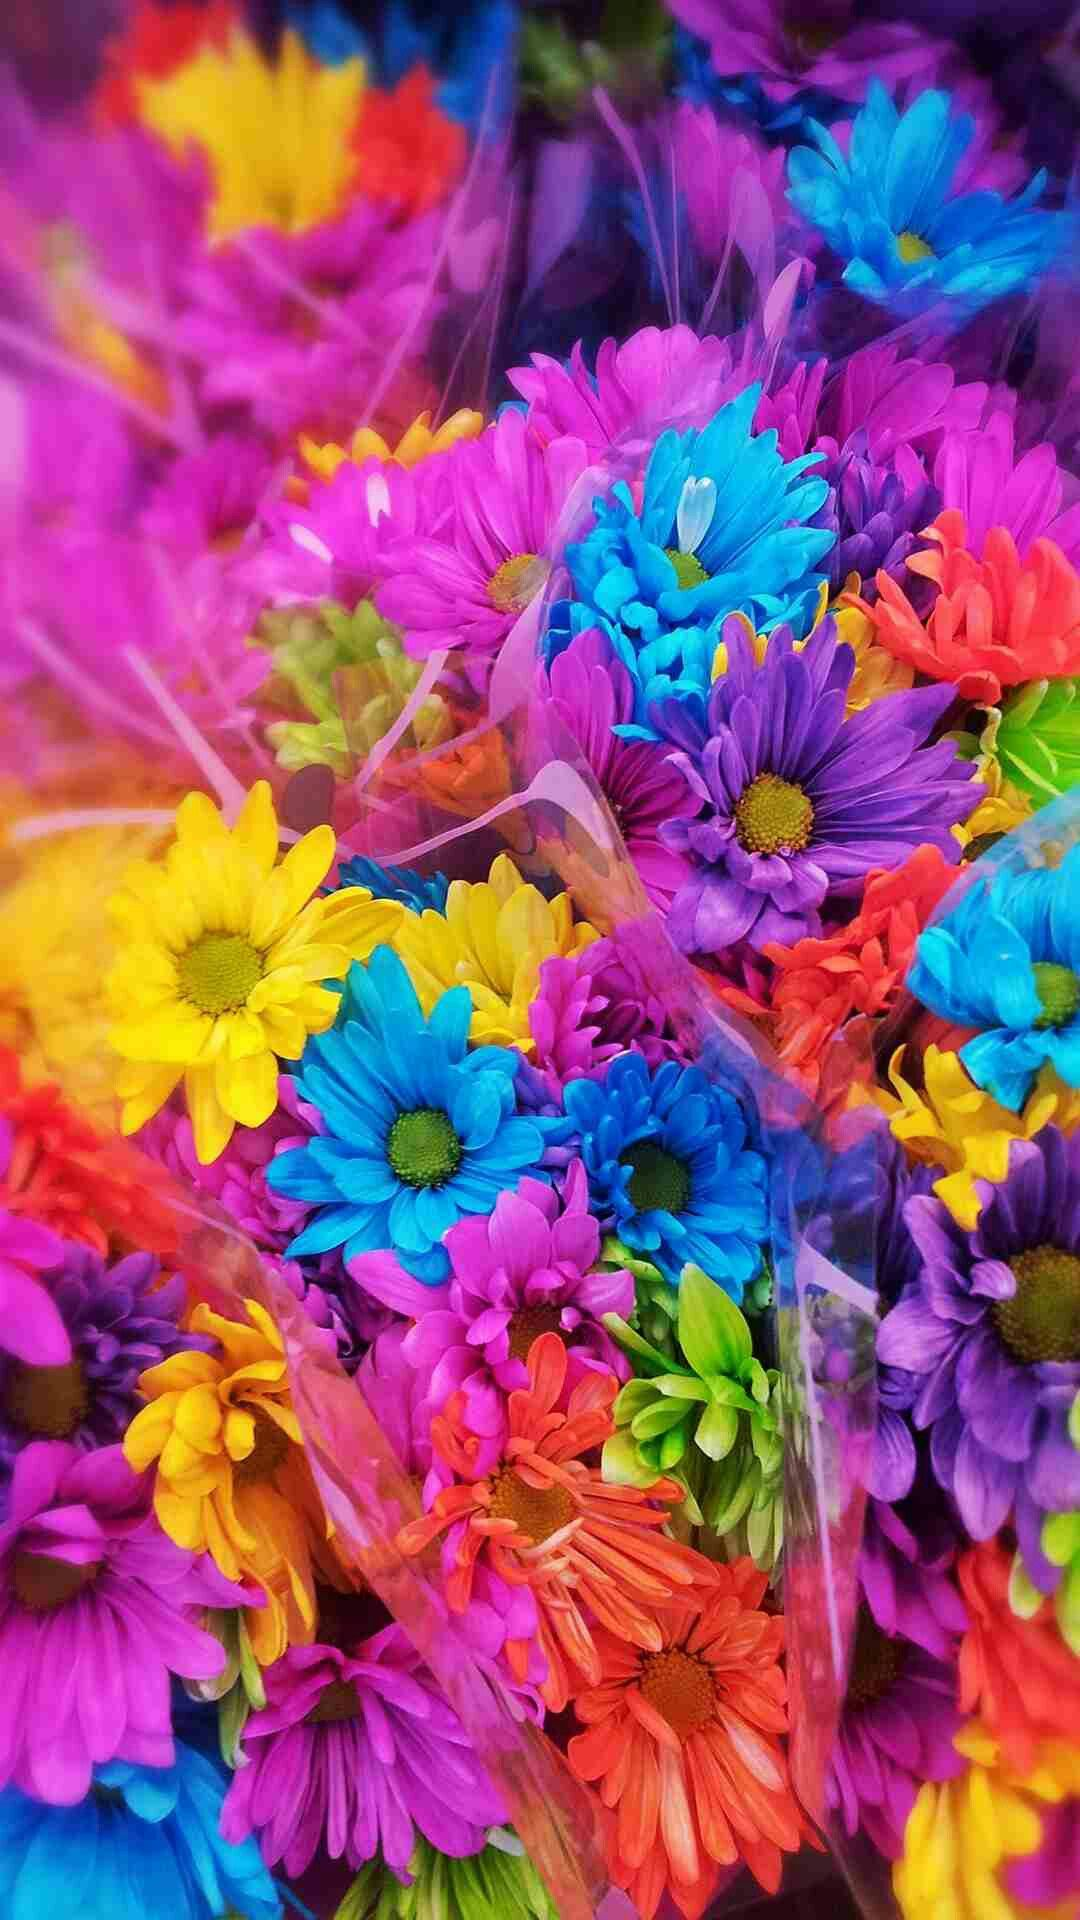 Pin by yasuyo ishige on mika ninagawa pinterest flowers colorful wallpaper wallpapers user profile beautiful beautiful beautiful flowers twitter flower wall papers pretty flowers voltagebd Gallery